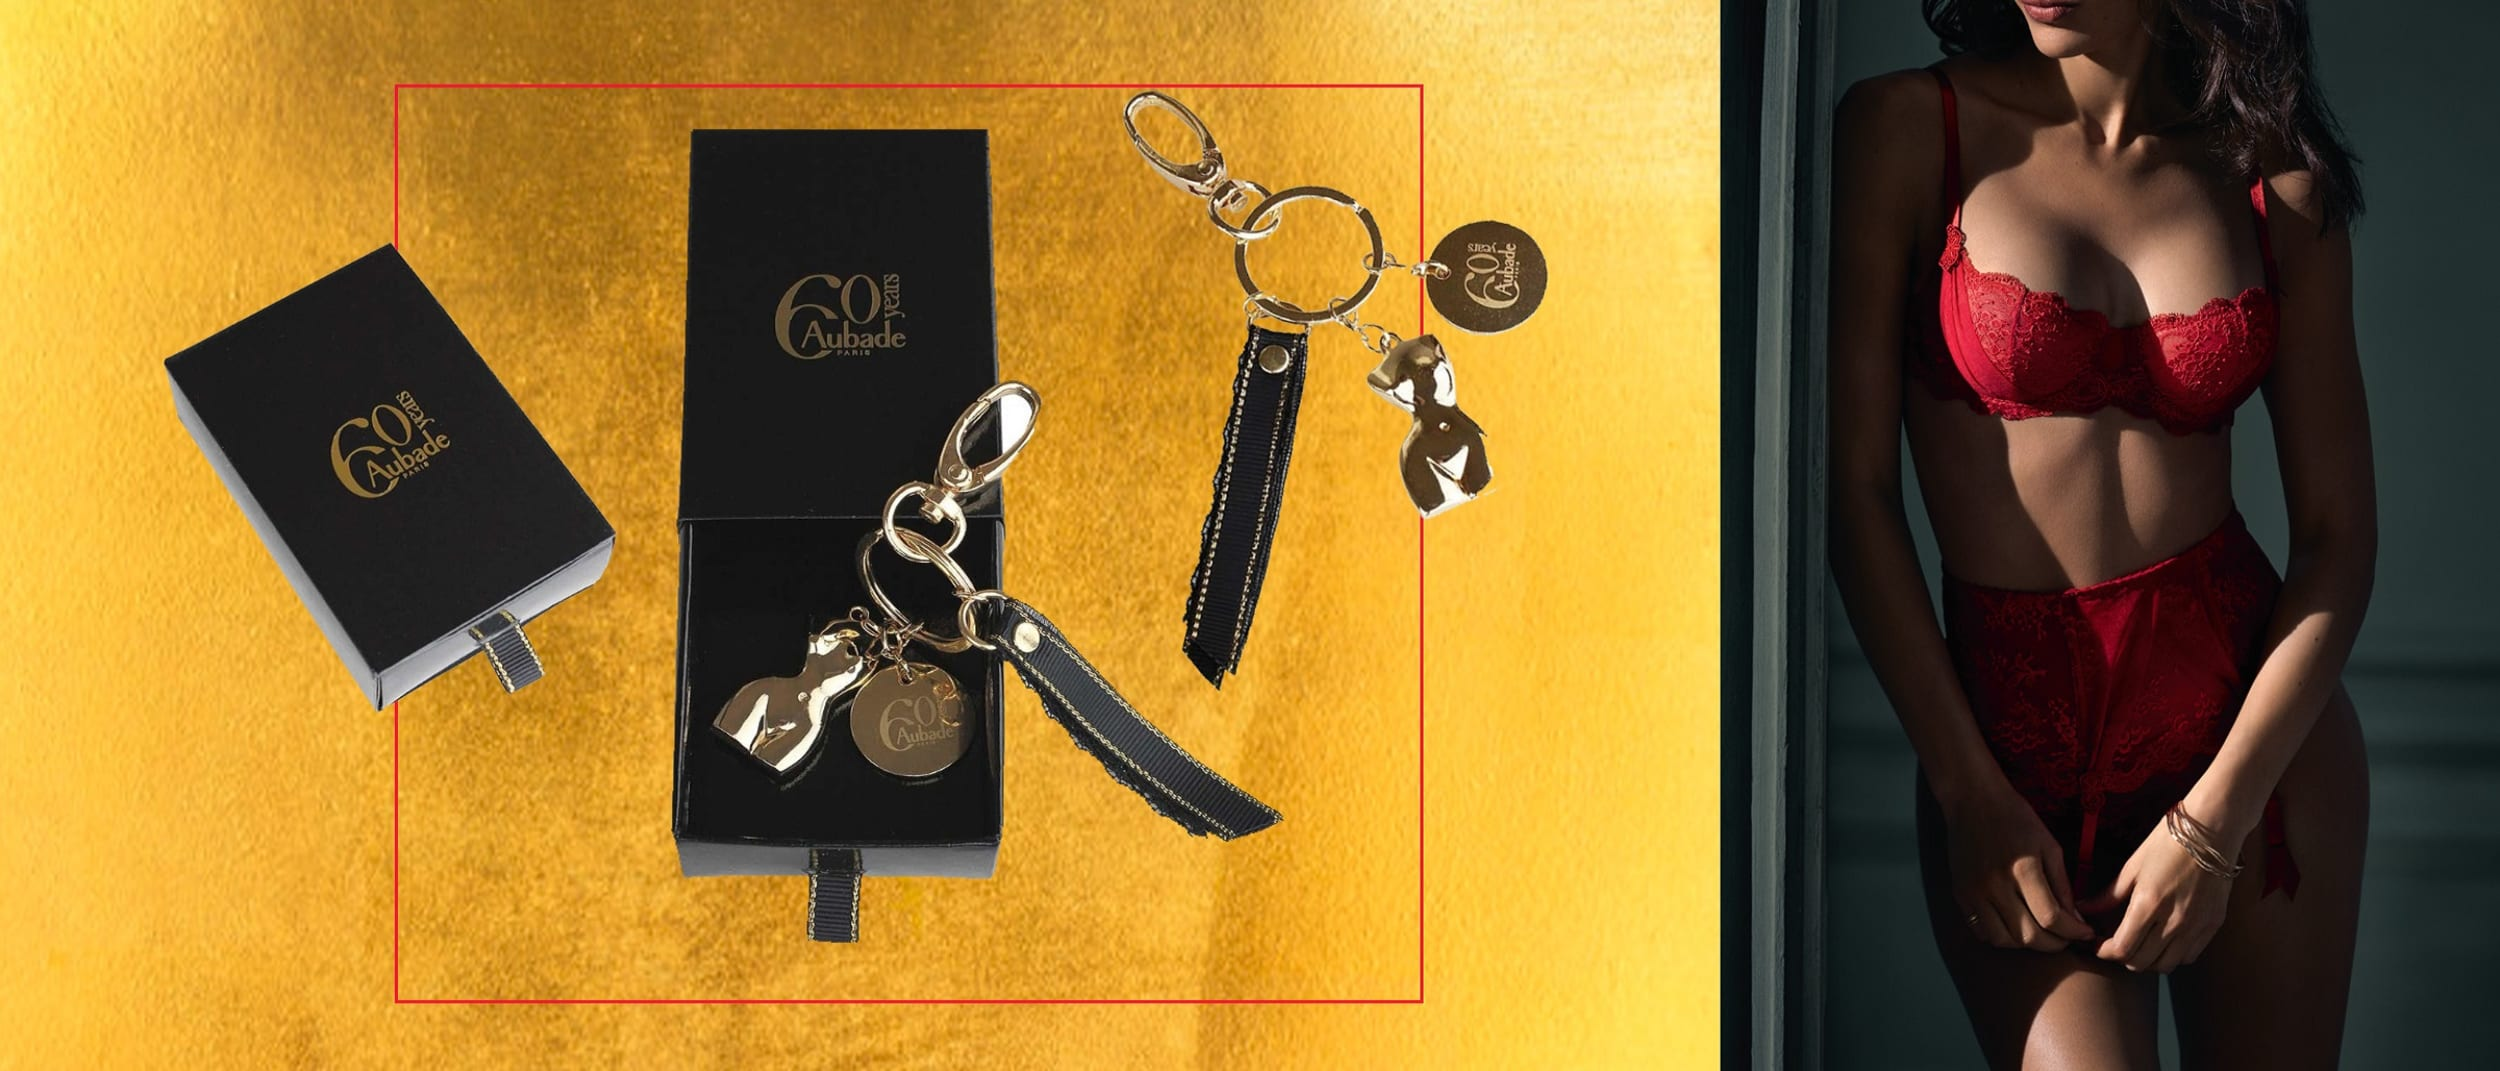 IM Lingerie: Aubade Paris keyring gift with purchase